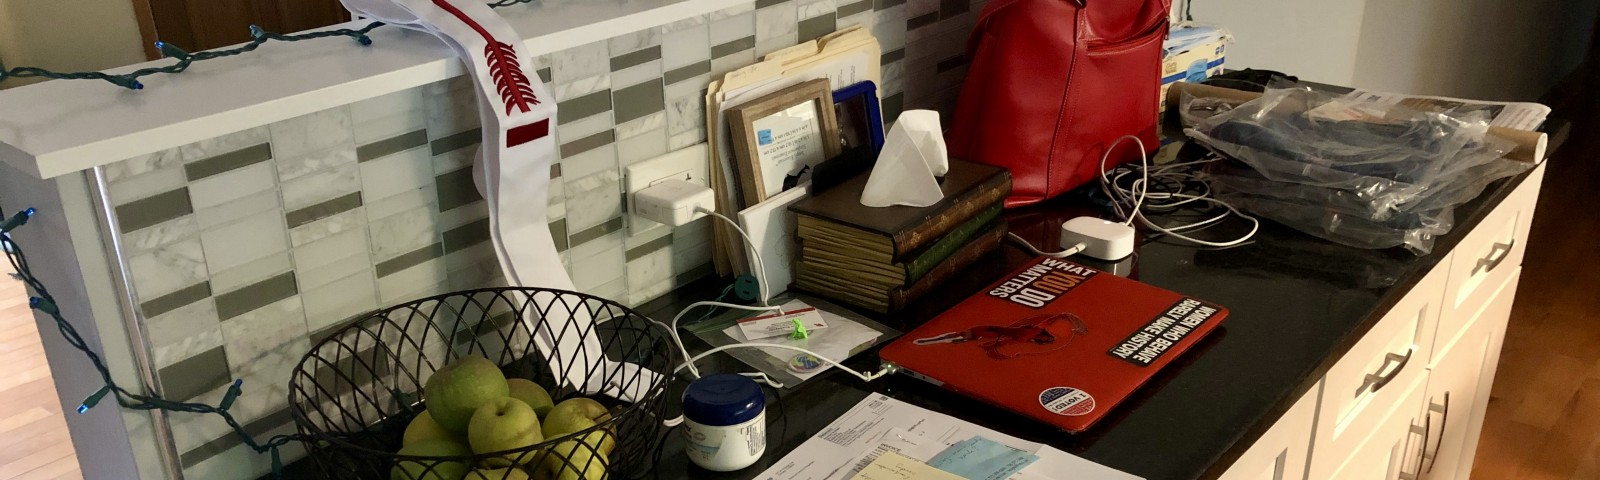 Author's photo of a kitchen counter with piles of papers, a laptop, red purse, basket of apples